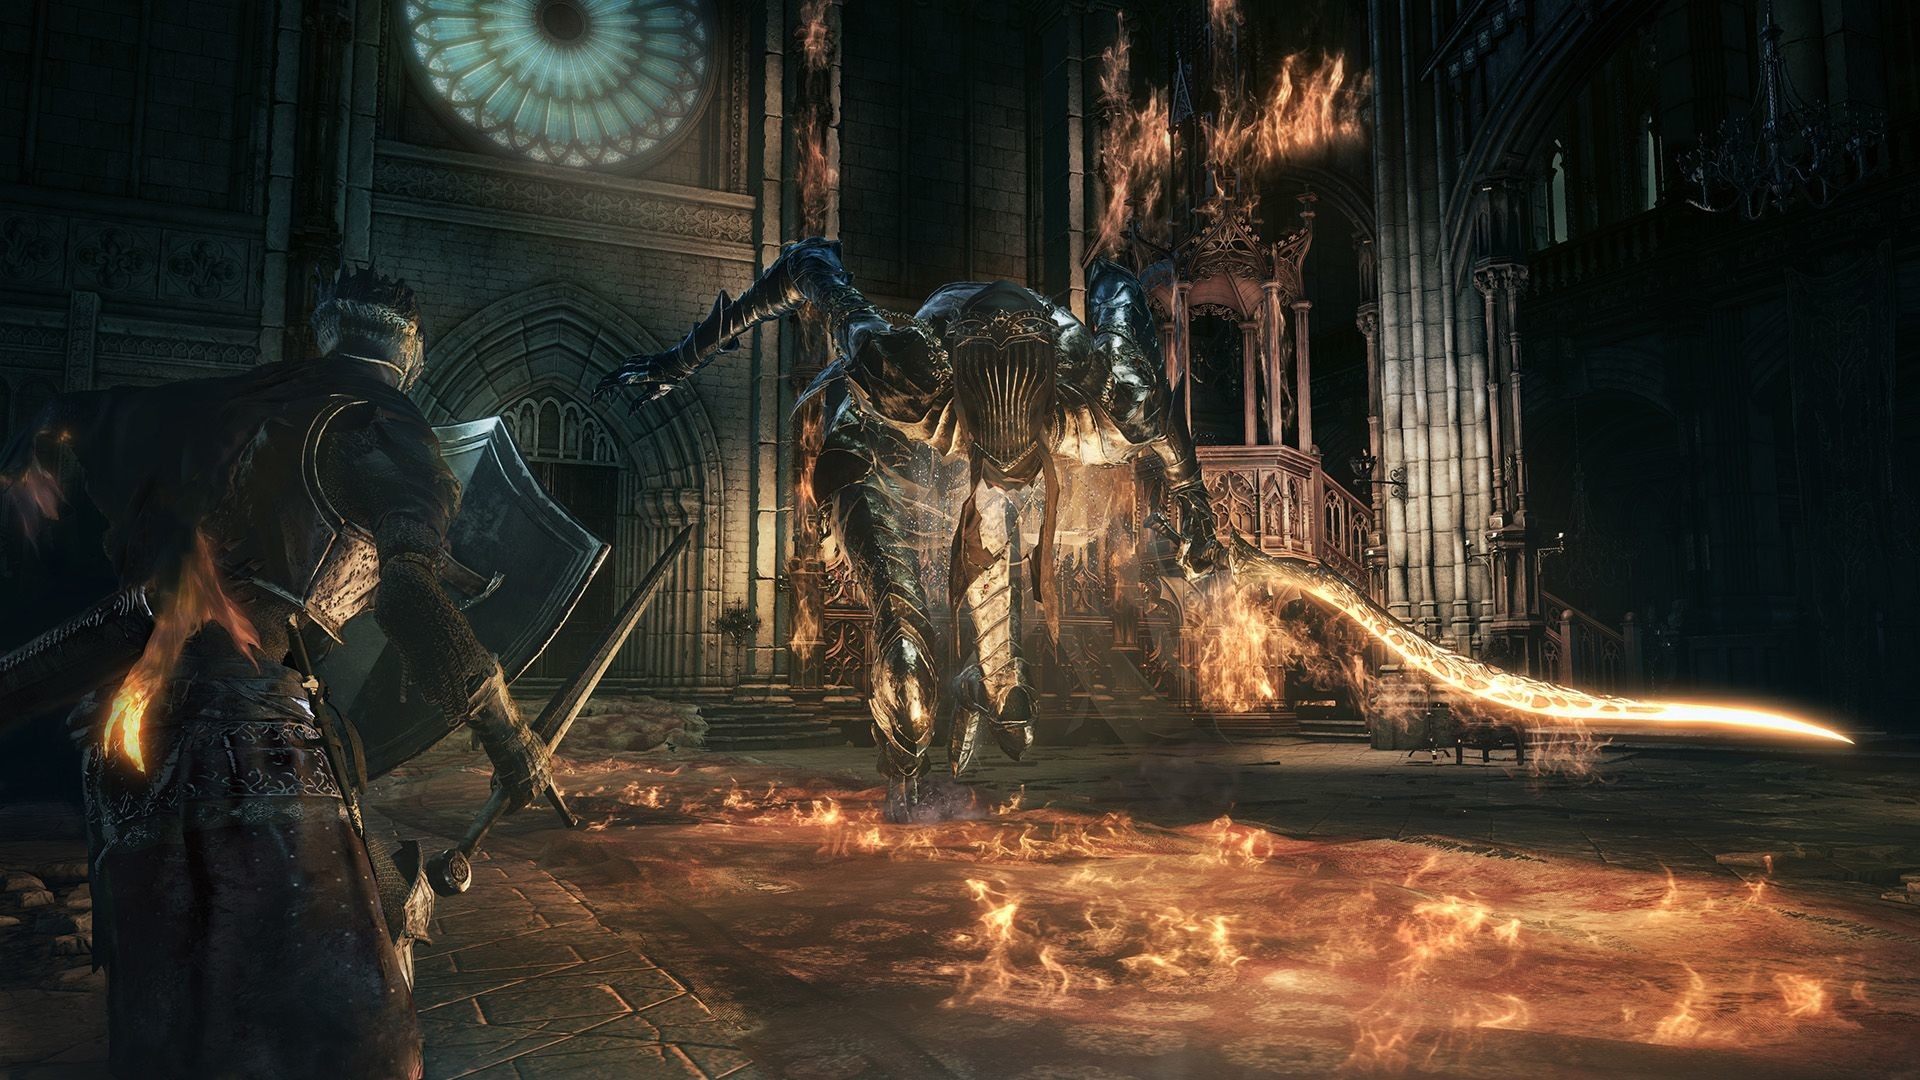 Dark Souls 3 Can Reach 60 FPS On PlayStation 4 Pro Following Update 1.11